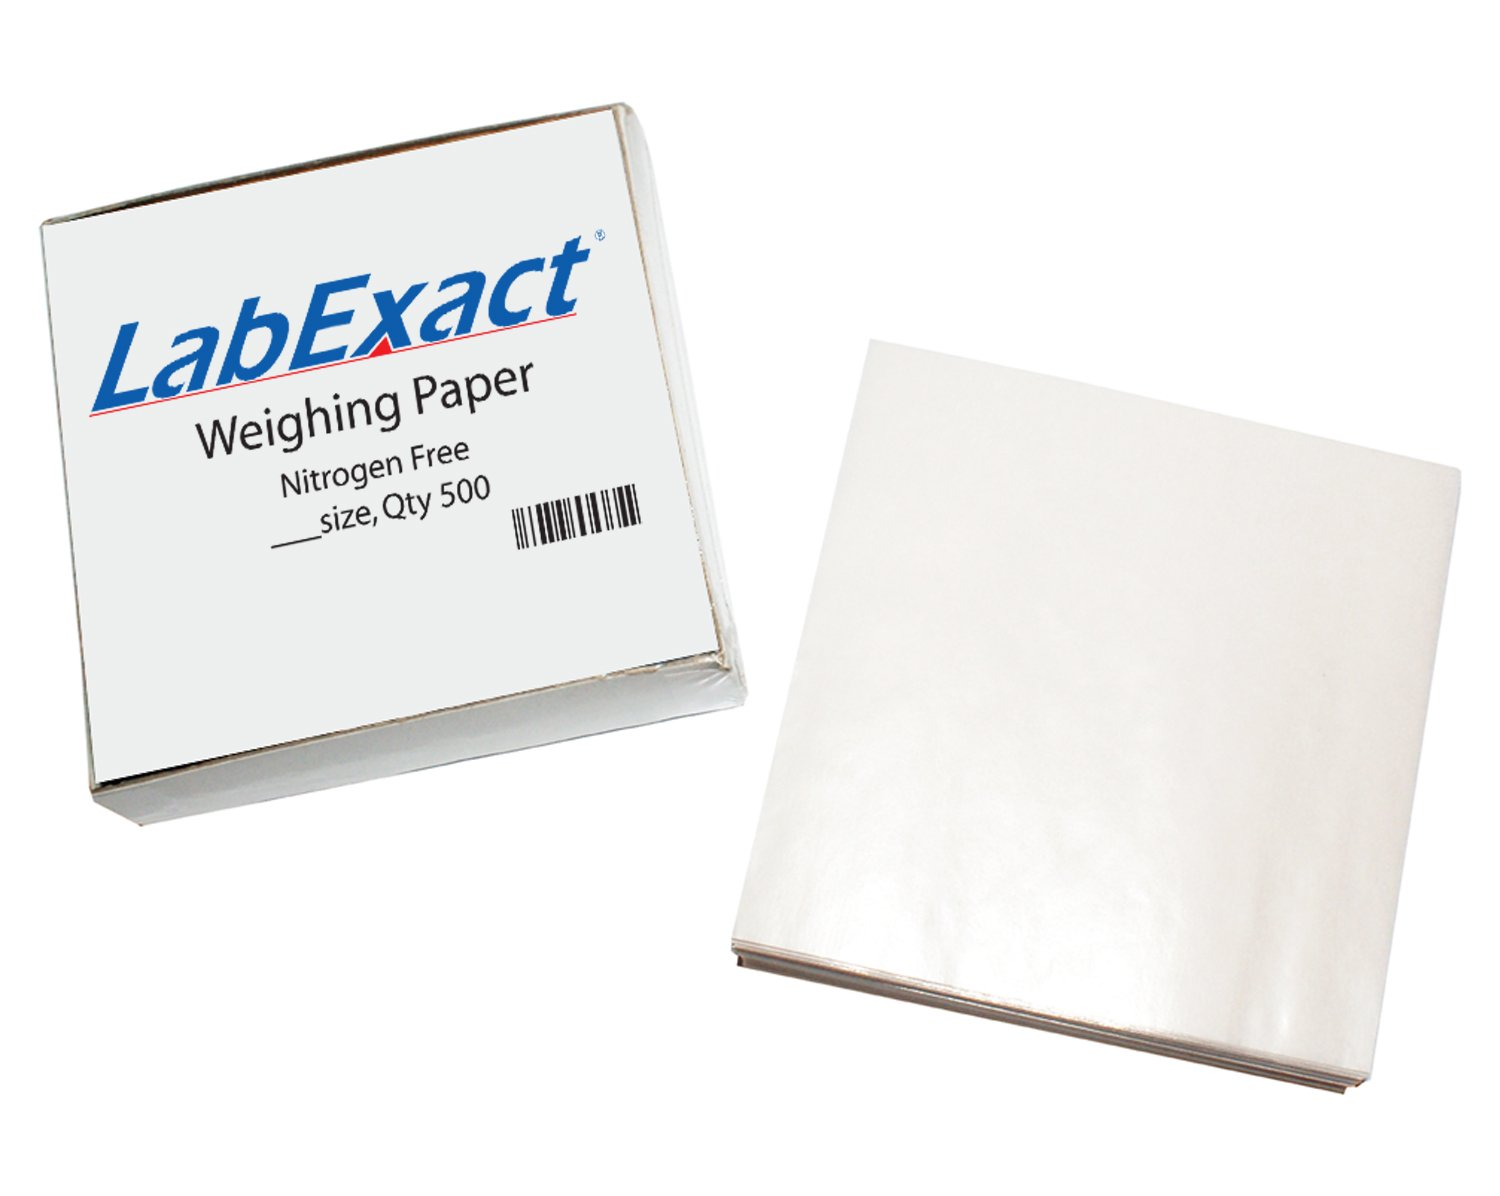 LabExact 1200159 W44 Cellulose Weighing Paper Sheet, Nitrogen Free, Non-Absorbing, High-Gloss, 4 x 4 Inches (Pack of 500)